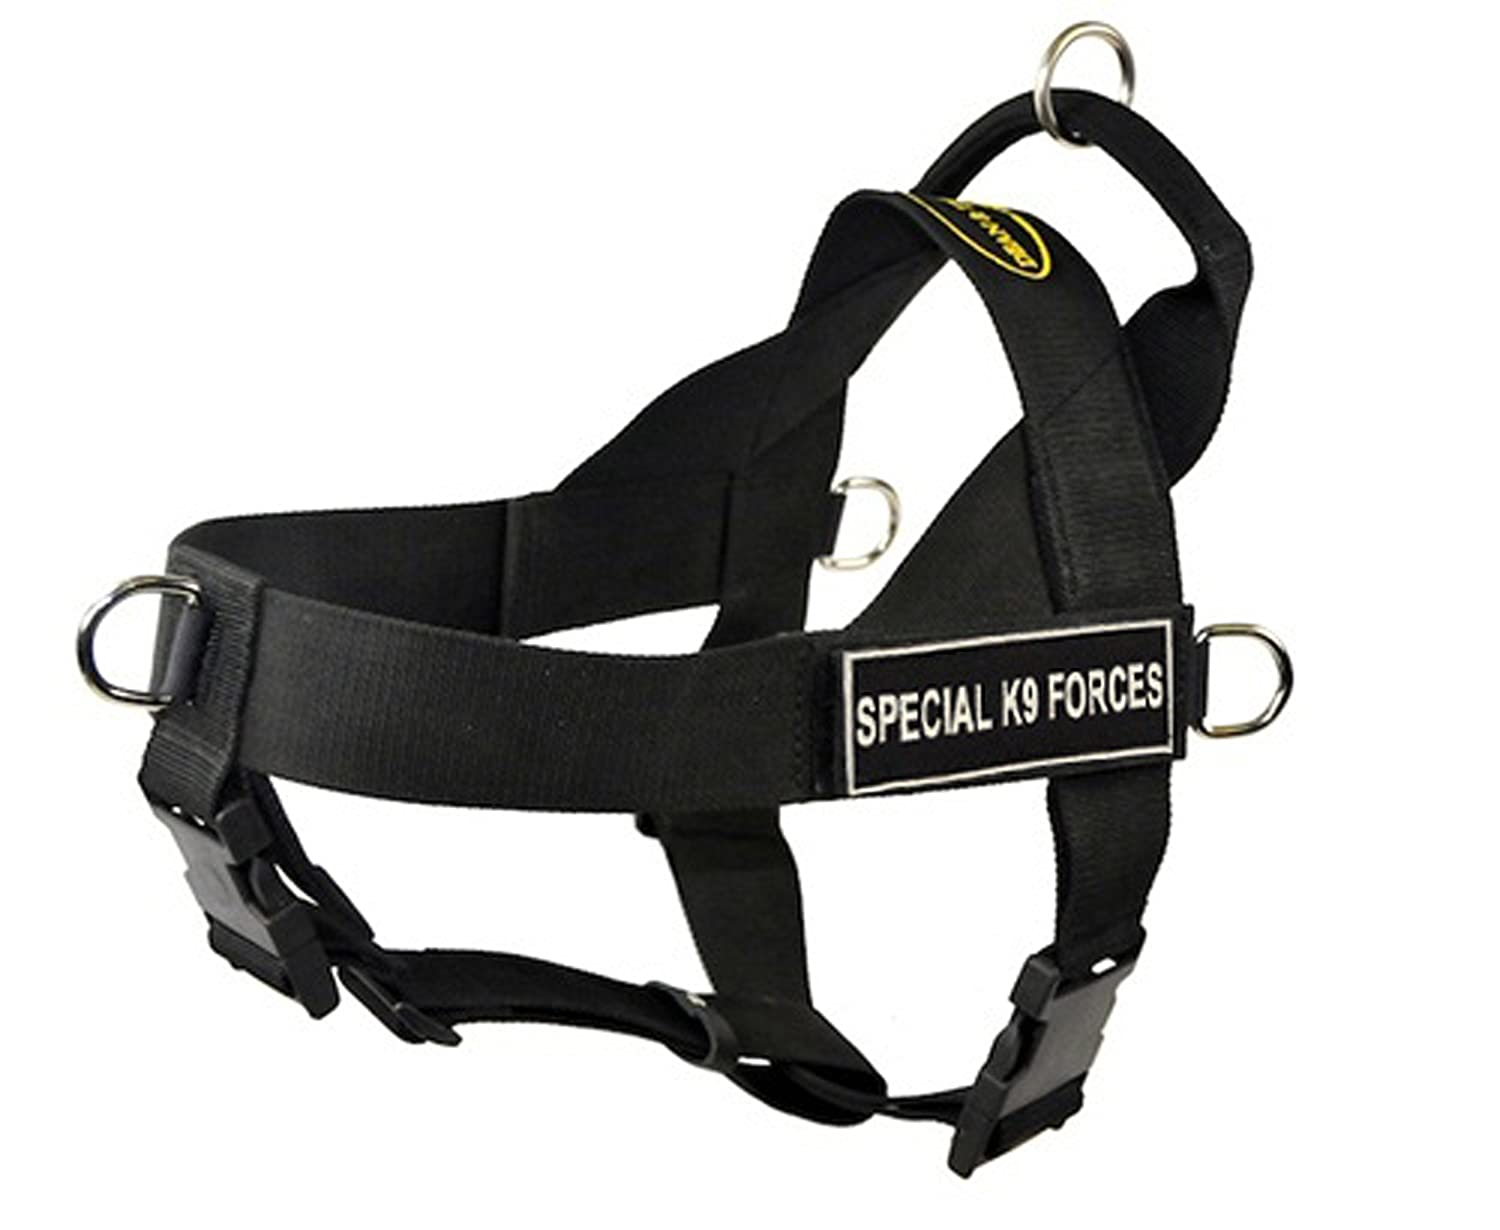 Dean & Tyler Universal No Pull Dog Harness, Special K9 Forces, X-Large, Fits Girth, 91cm to 119cm, Black